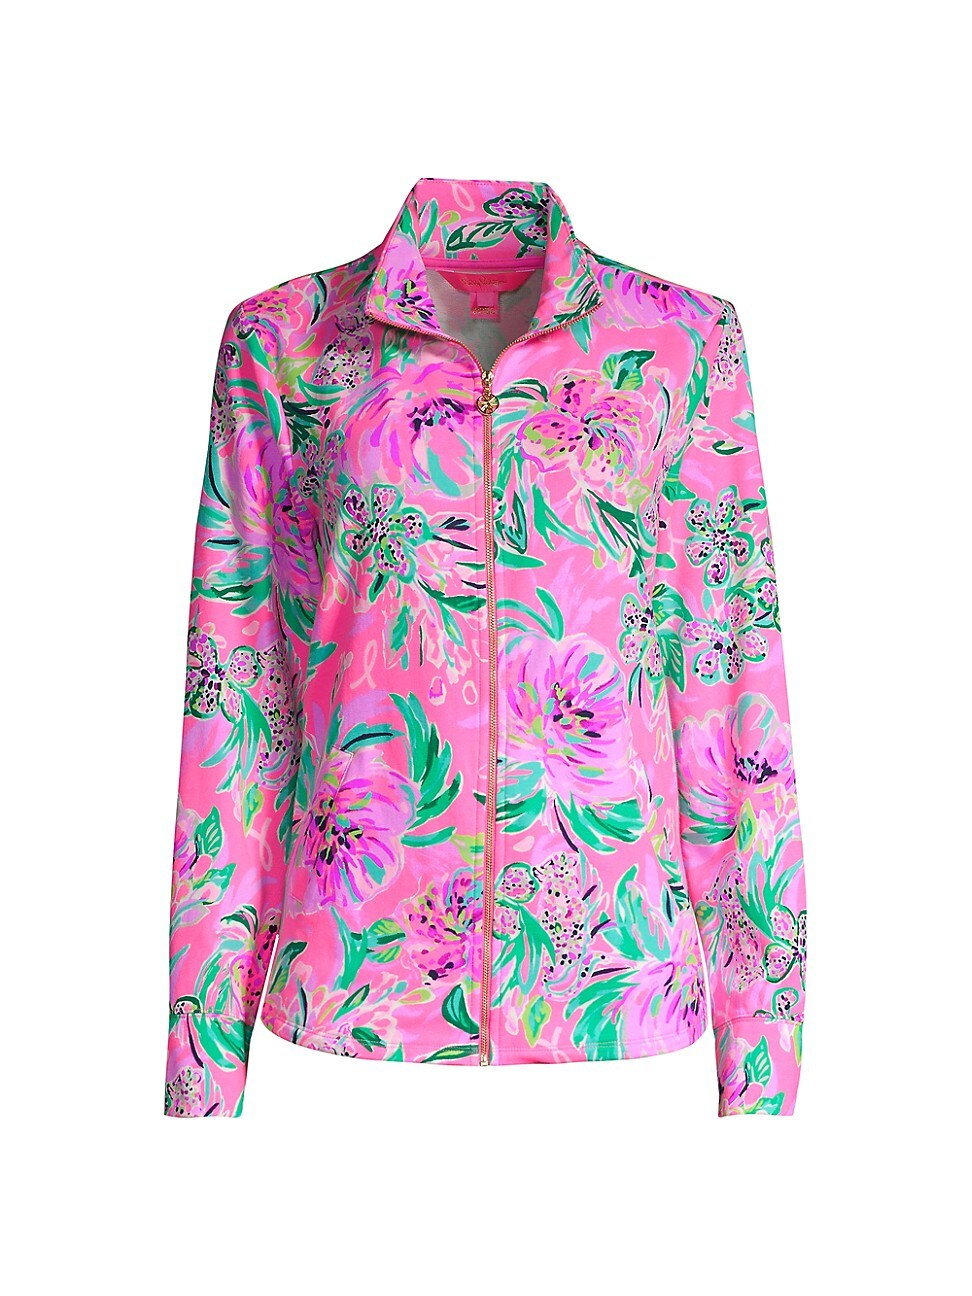 Lilly Pulitzer Upf 50+ Leona Round Hem Zip-up In Cockatoo Pink Paws For A Cause